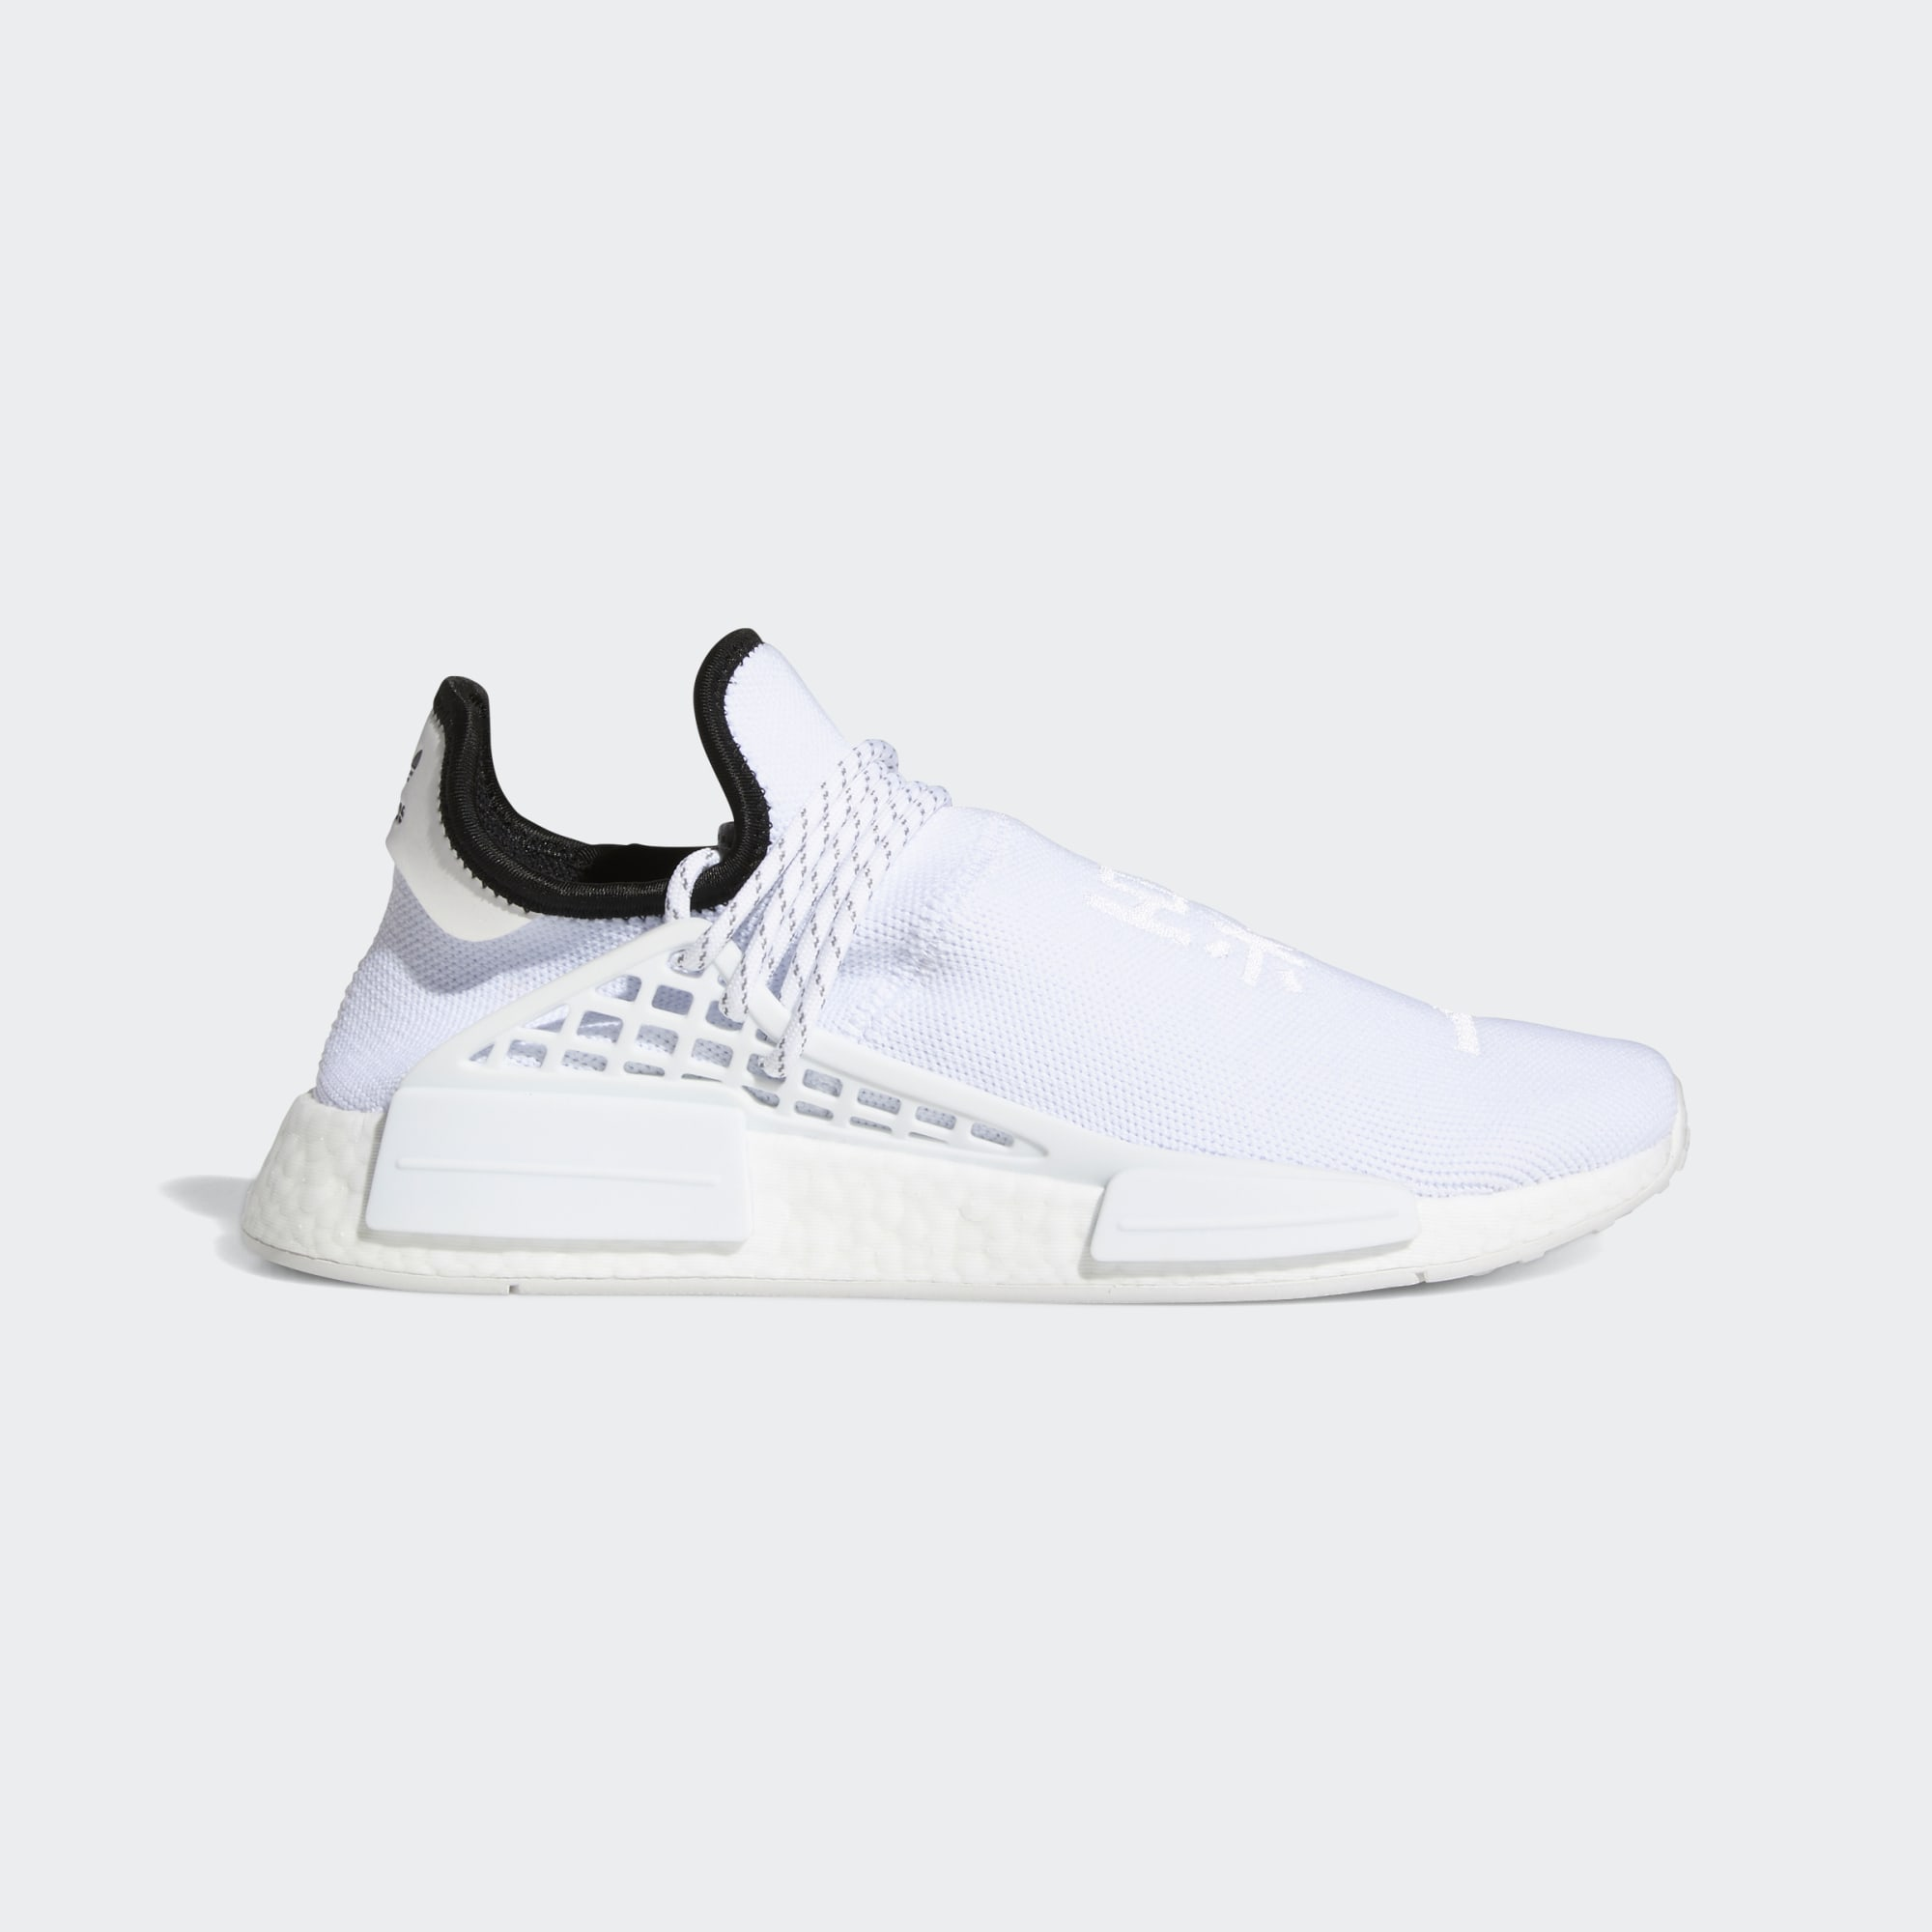 Pharrell Williams x adidas Originals NMD HU 'Core White'}